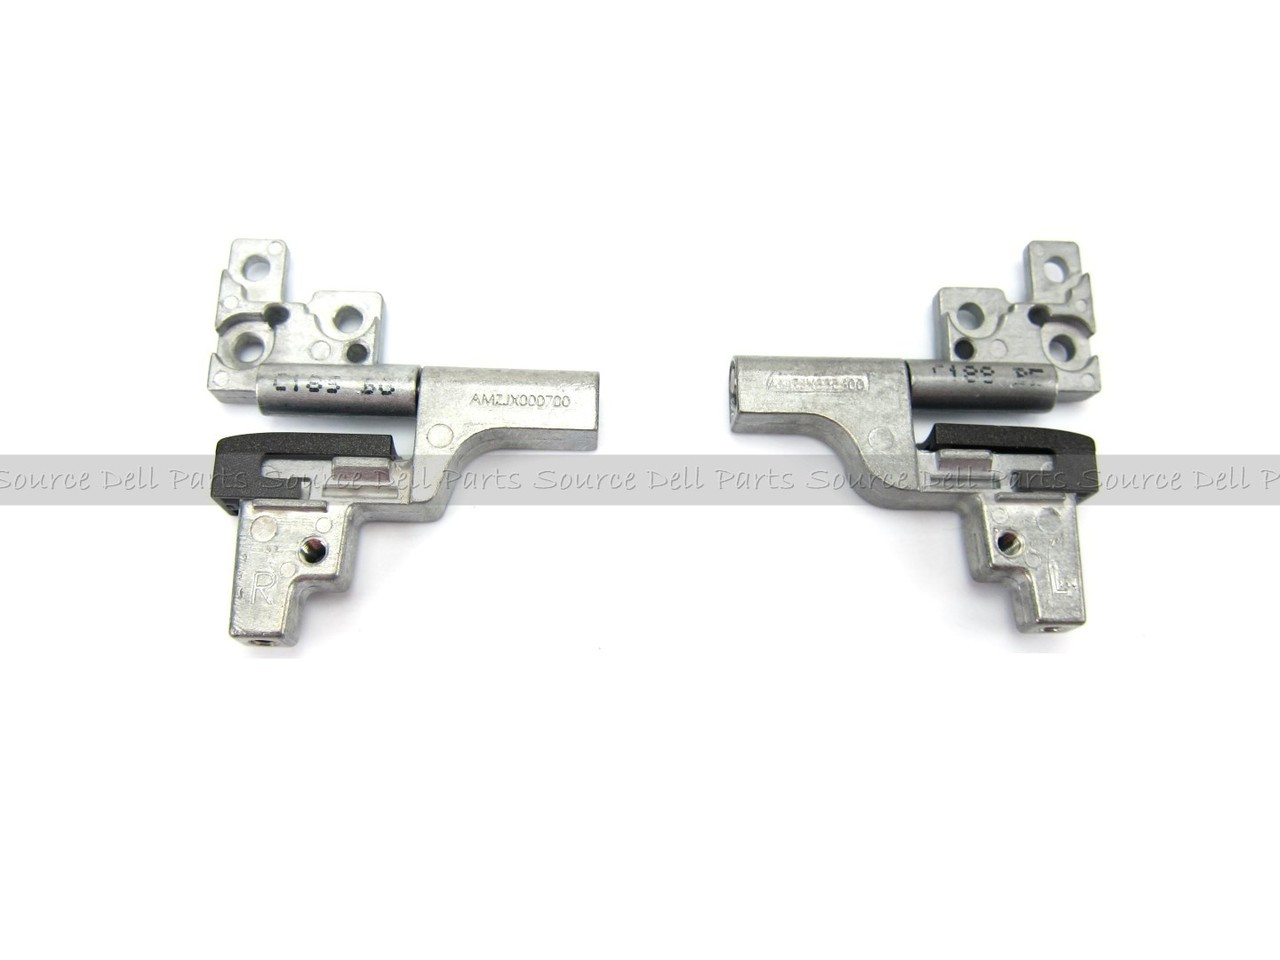 Dell Latitude D620 D630 LCD Hinges Left & Right Hinge Set - TU507